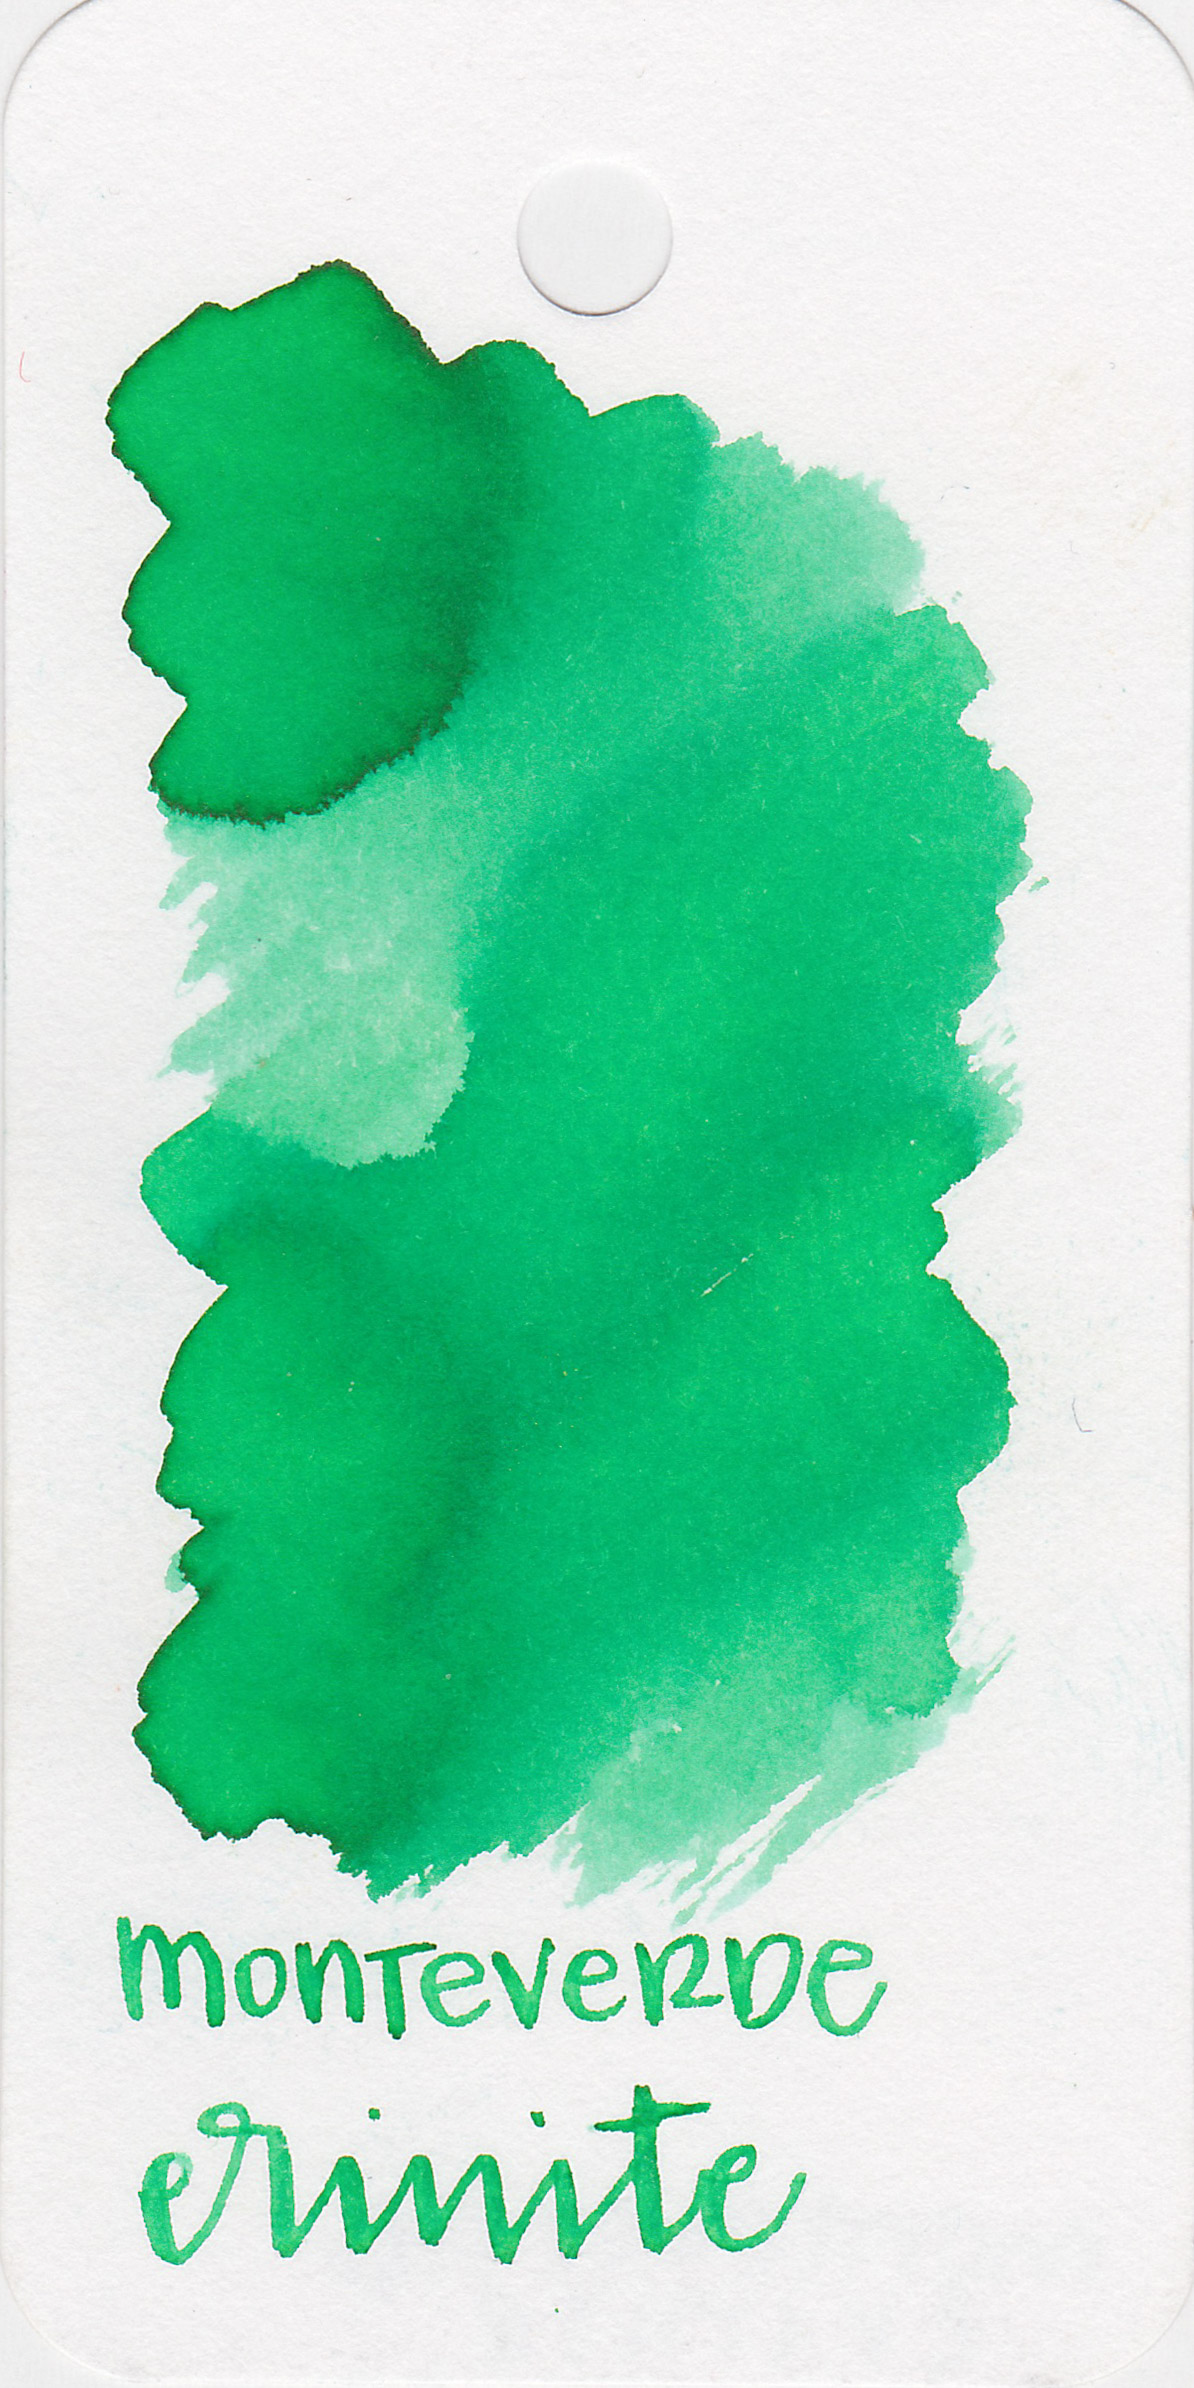 The color: - Erinite ranges from a very light mint green to a bright medium green.